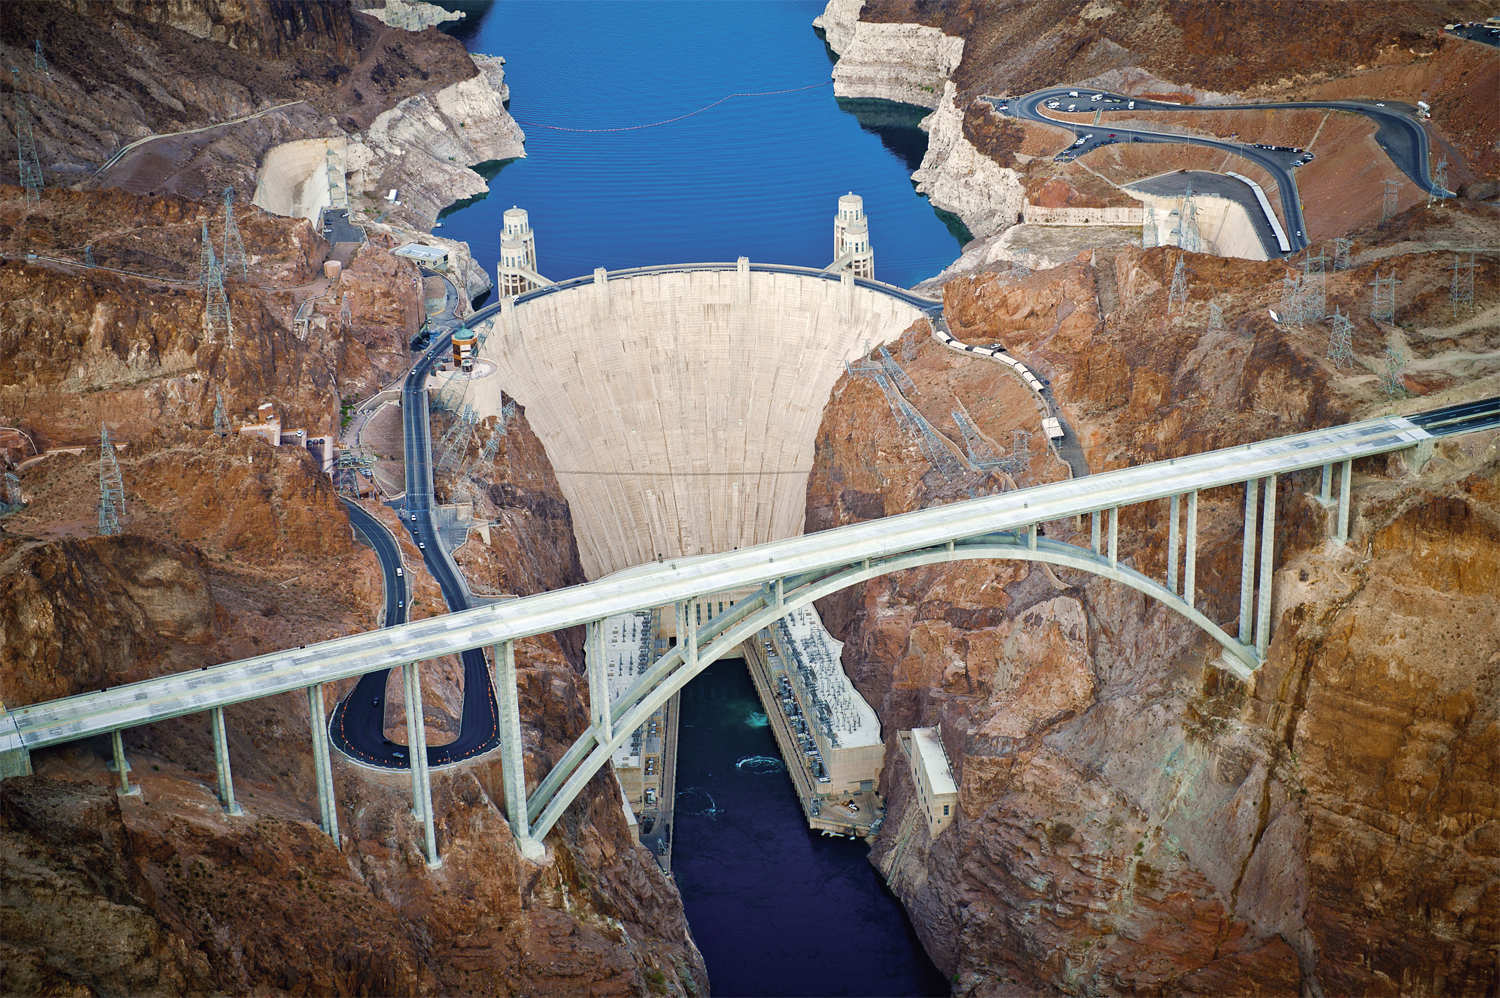 HOOVER DAM(FILEminimizer)